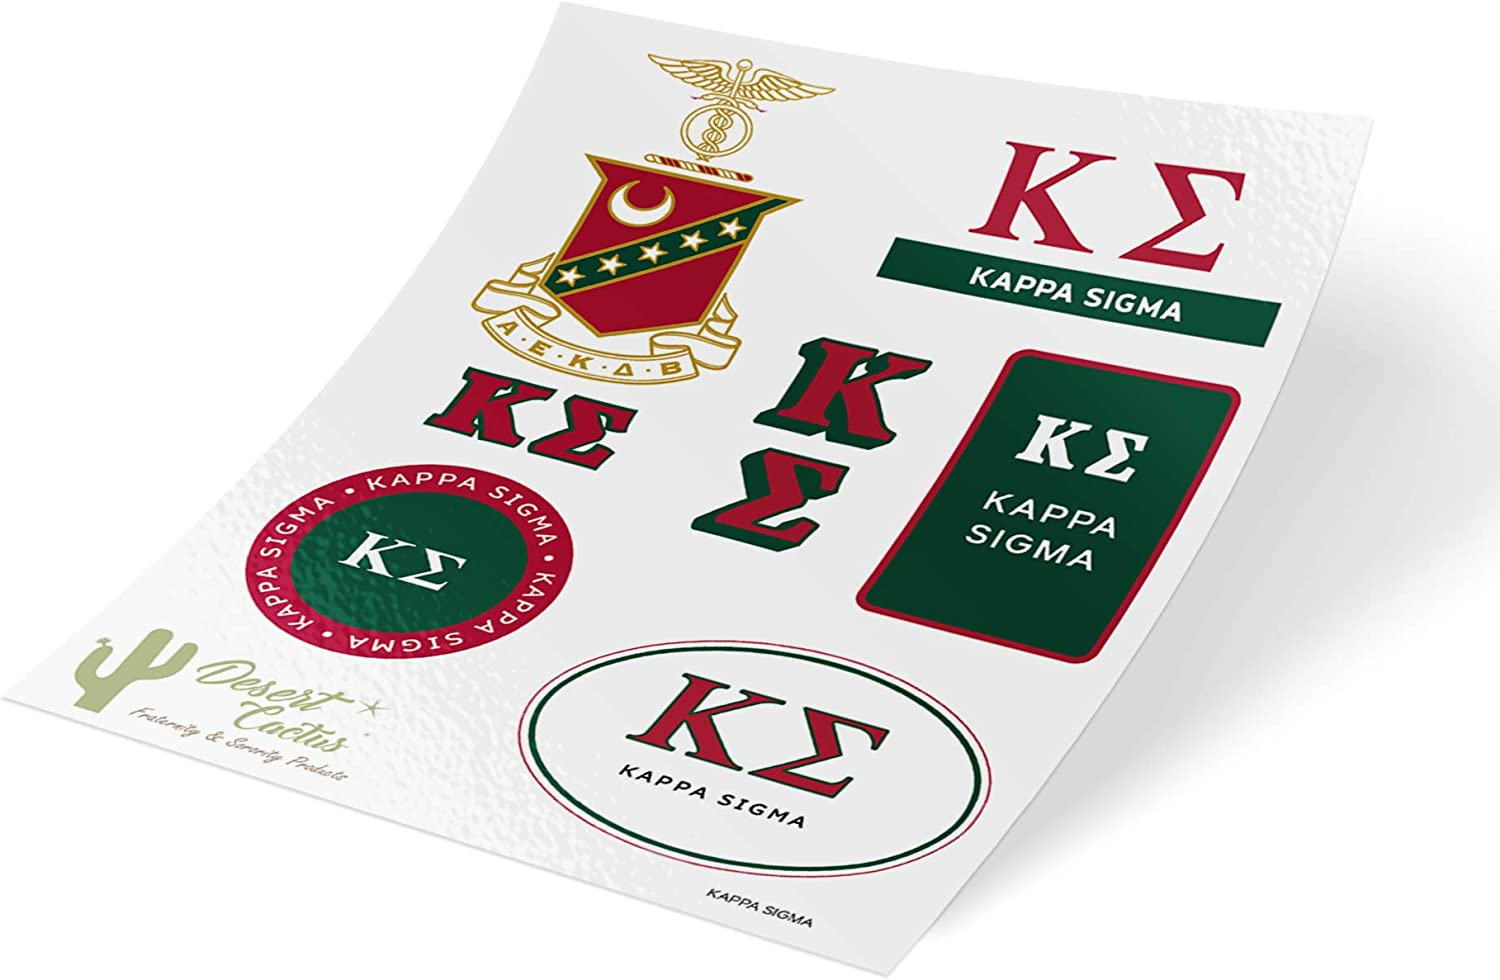 Kappa Sigma Standard Sticker Sheet Decal Laptop Water Bottle Car Kappa Sig (Full Sheet - Standard)